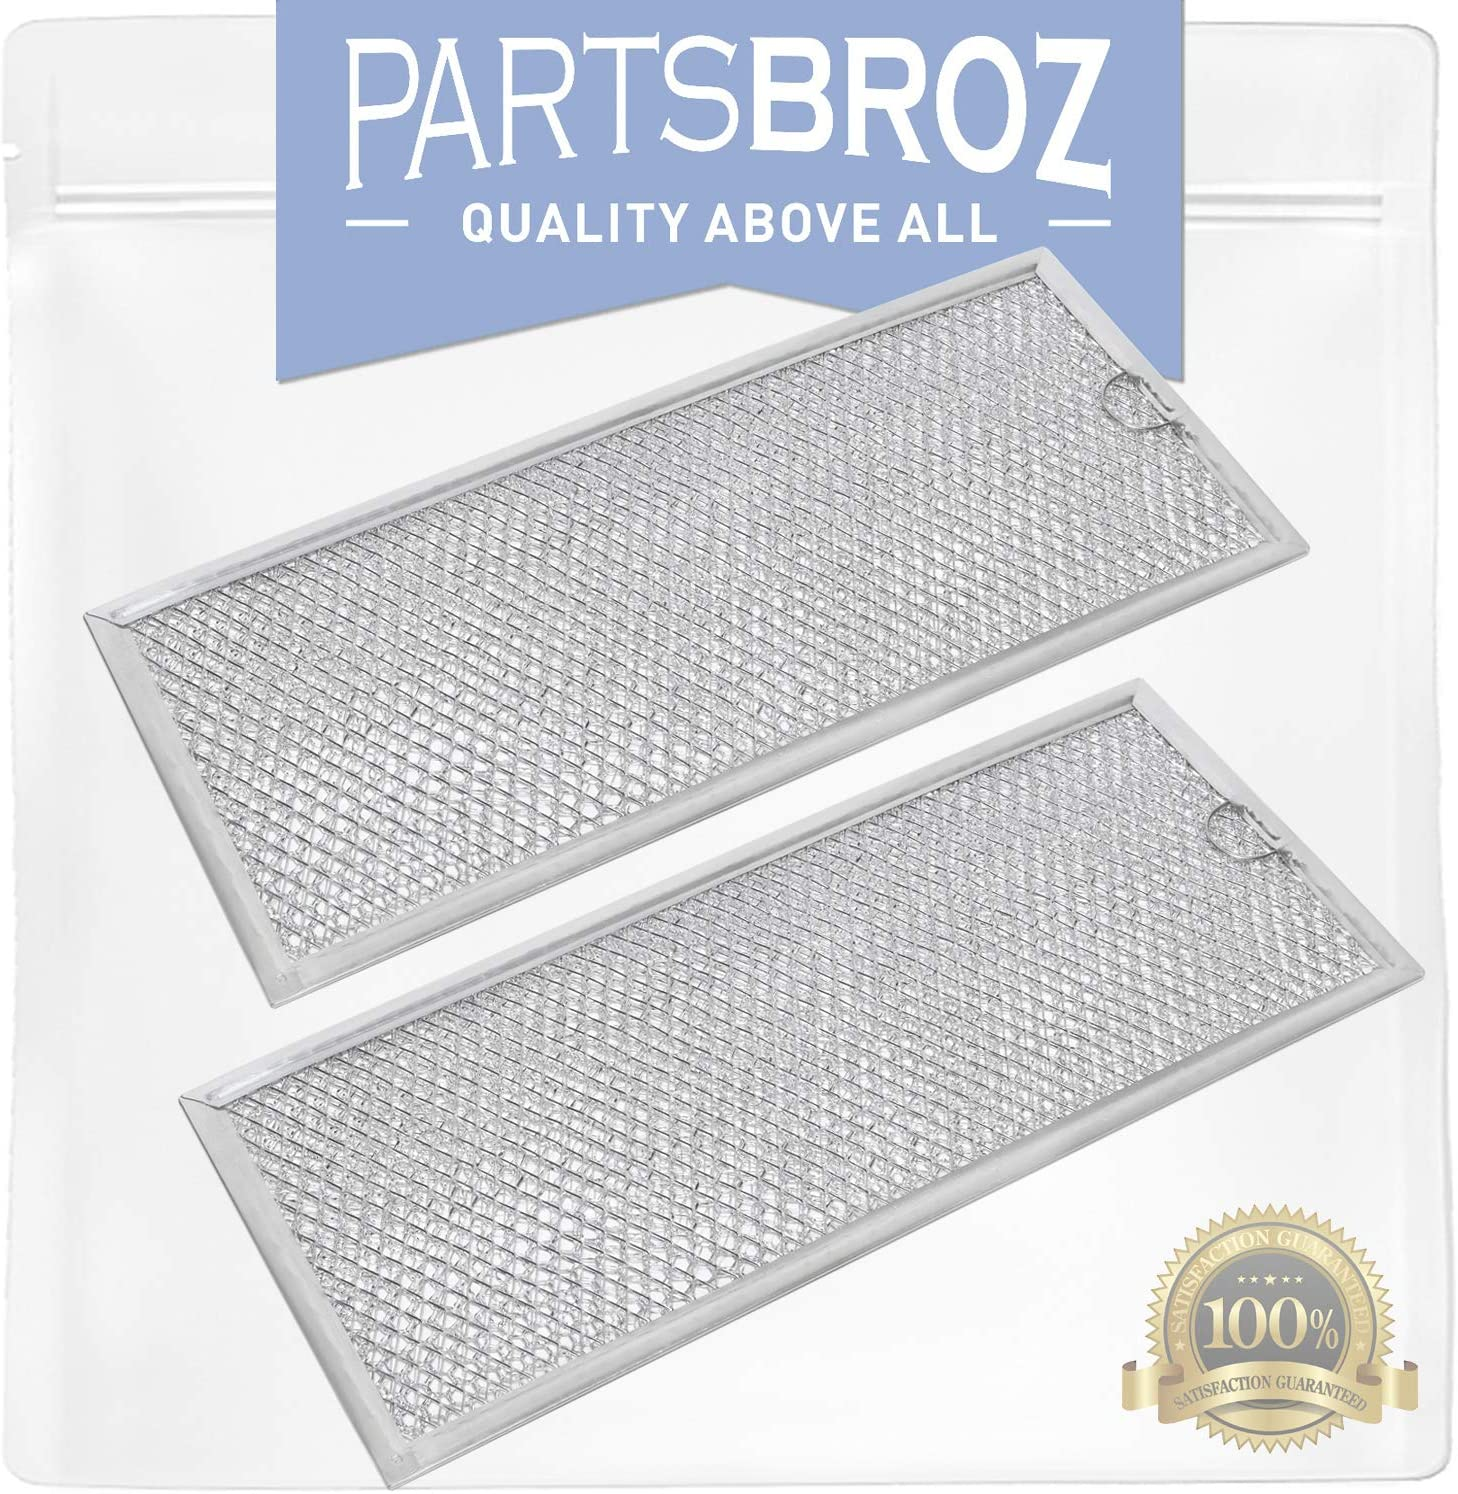 WB06X10596 (2-Pack) Air Filter for GE Microwaves by PartsBroz - Replaces Part Numbers AP3792368, 1085087, AH952418, EA952418, PS952418